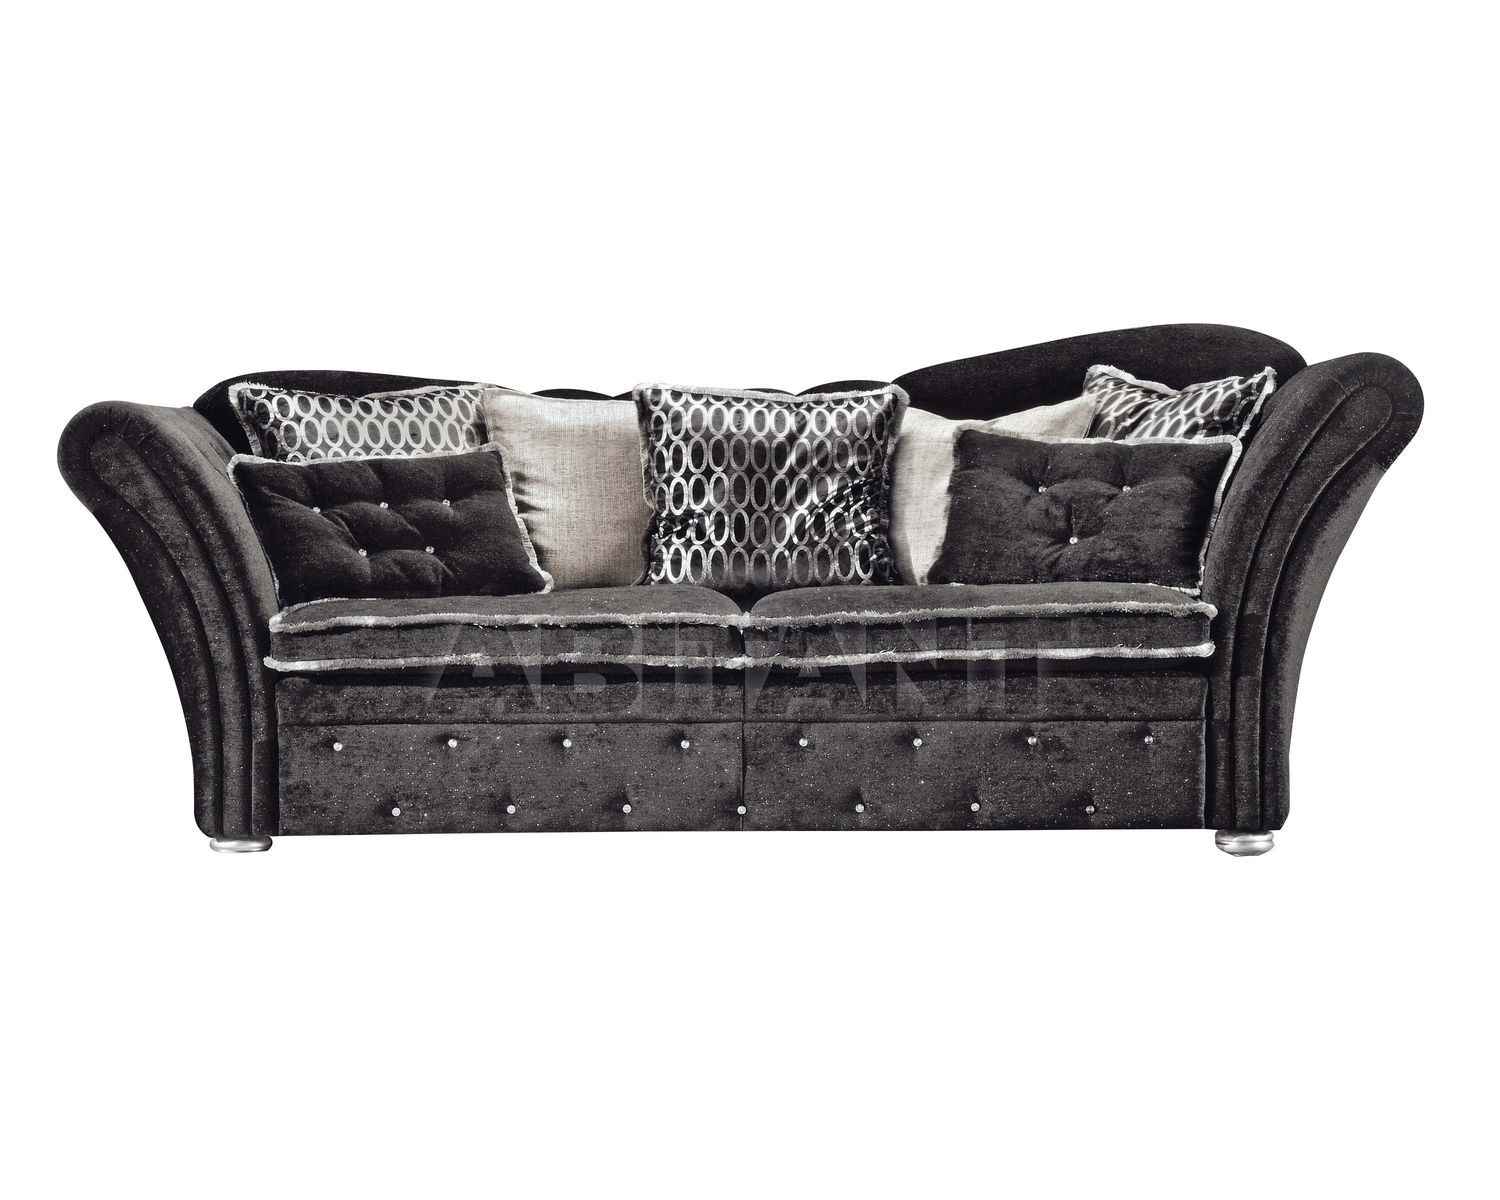 Купить Диван Formerin Сontemporary Classic MARILYN Divano/Sofa